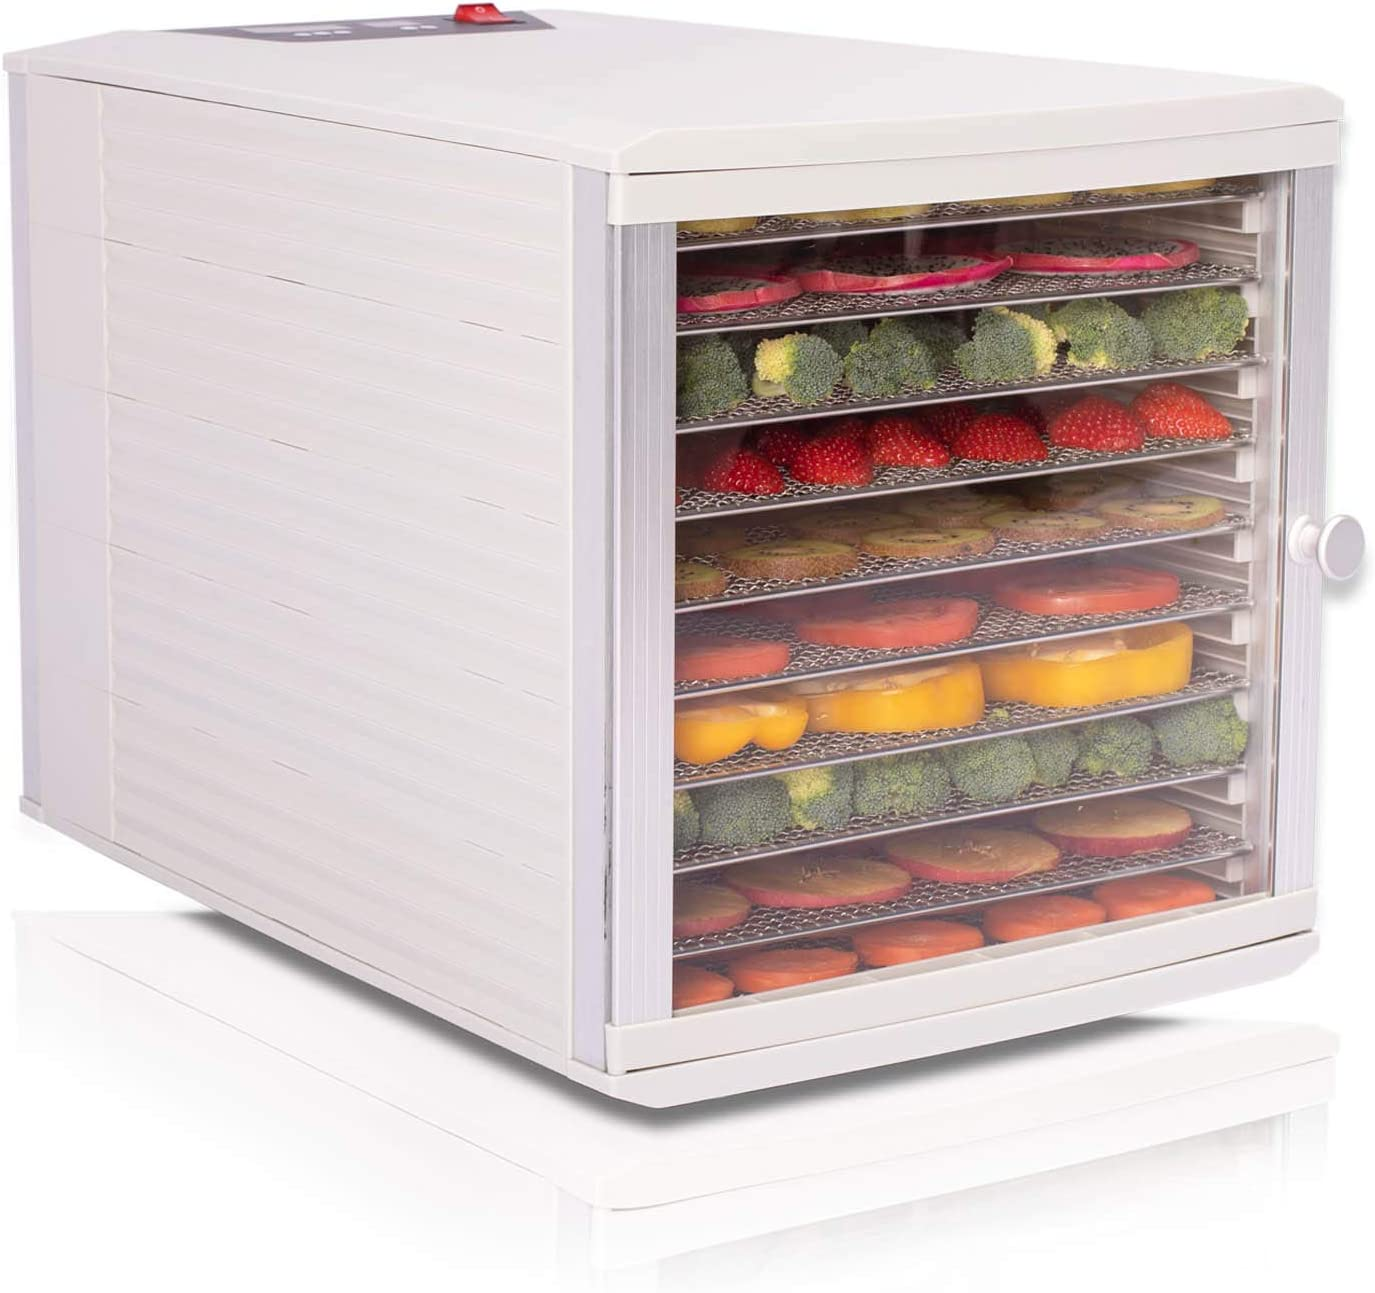 JAYETEC Food Dehydrators, 10 Trays staniless steel trays with digital adjustable,temperature and timer controlling, vegetable, fruit, jerky,beef, herb dehydrator, yogurt maker, double over heat protection, transparent door & Grey, including 2pcs non-stick sheets